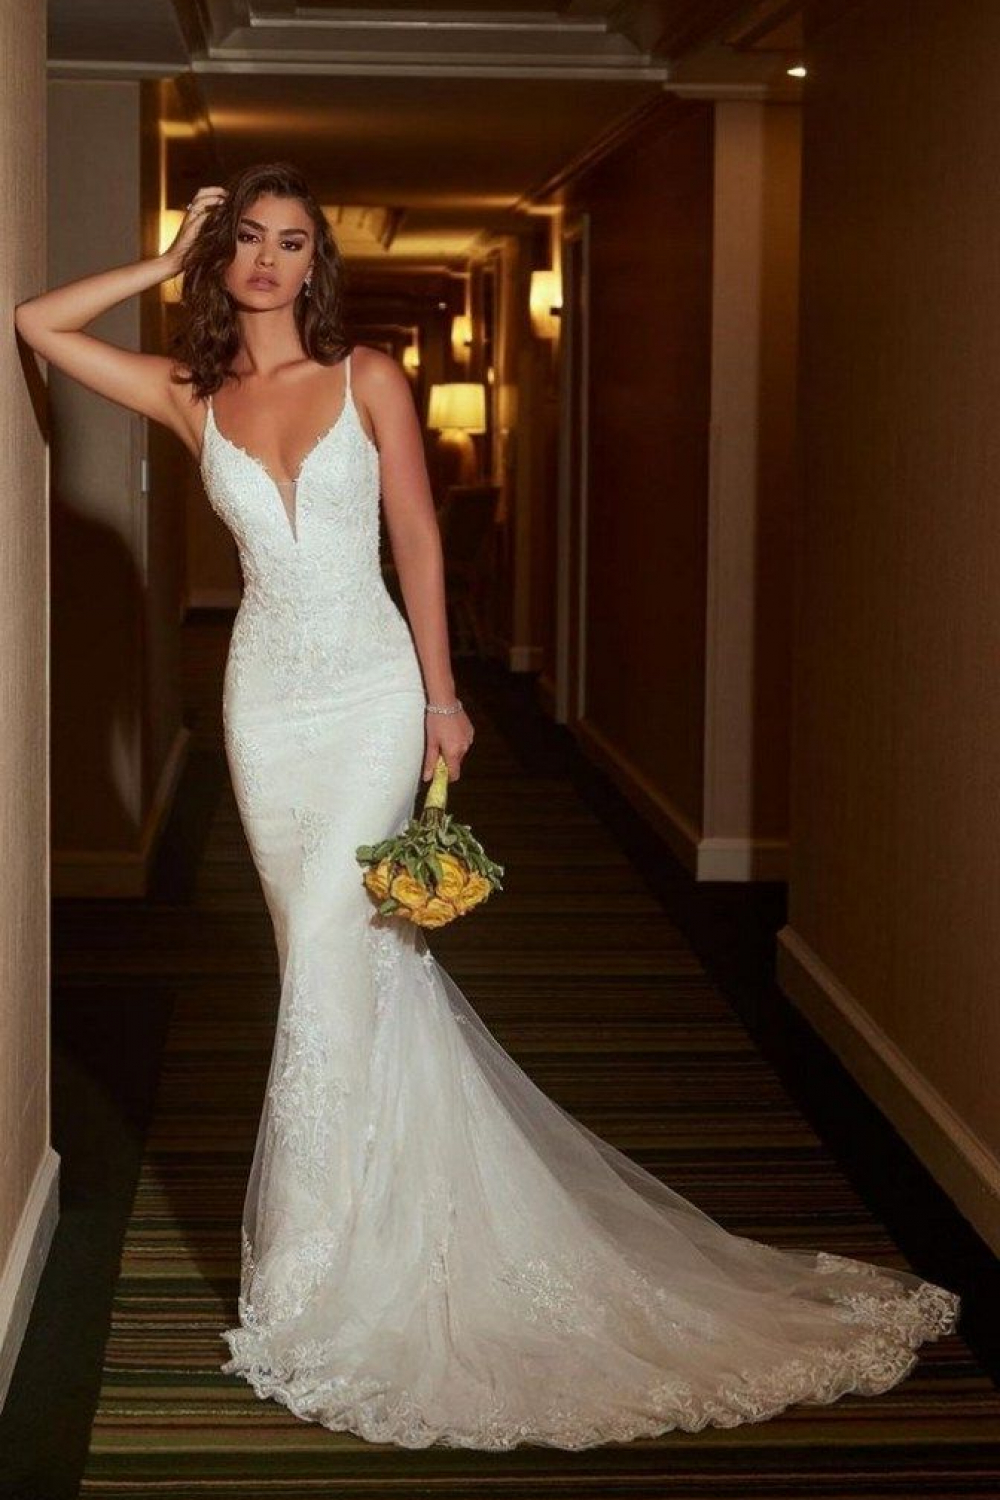 24 Creative Wedding Dress Ideas You Will Fall In Love